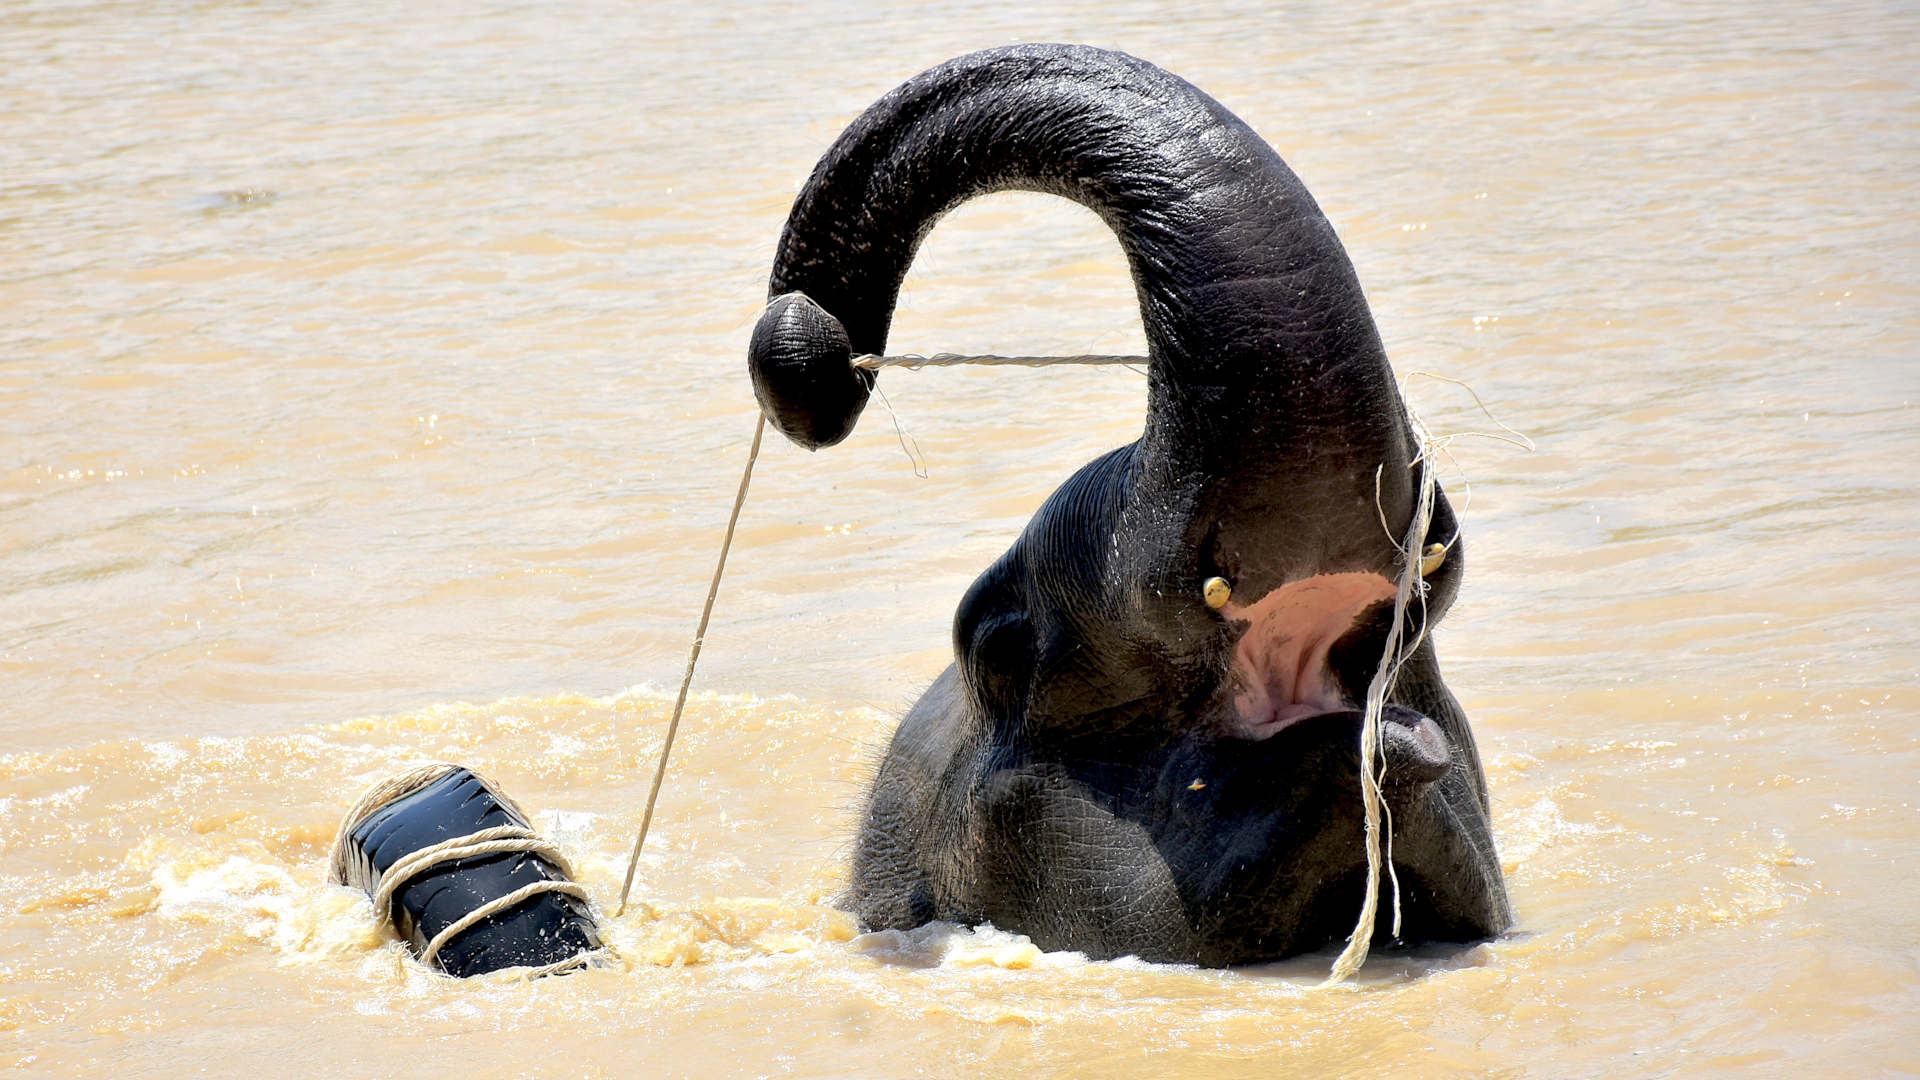 An elephant plays with rope in the river